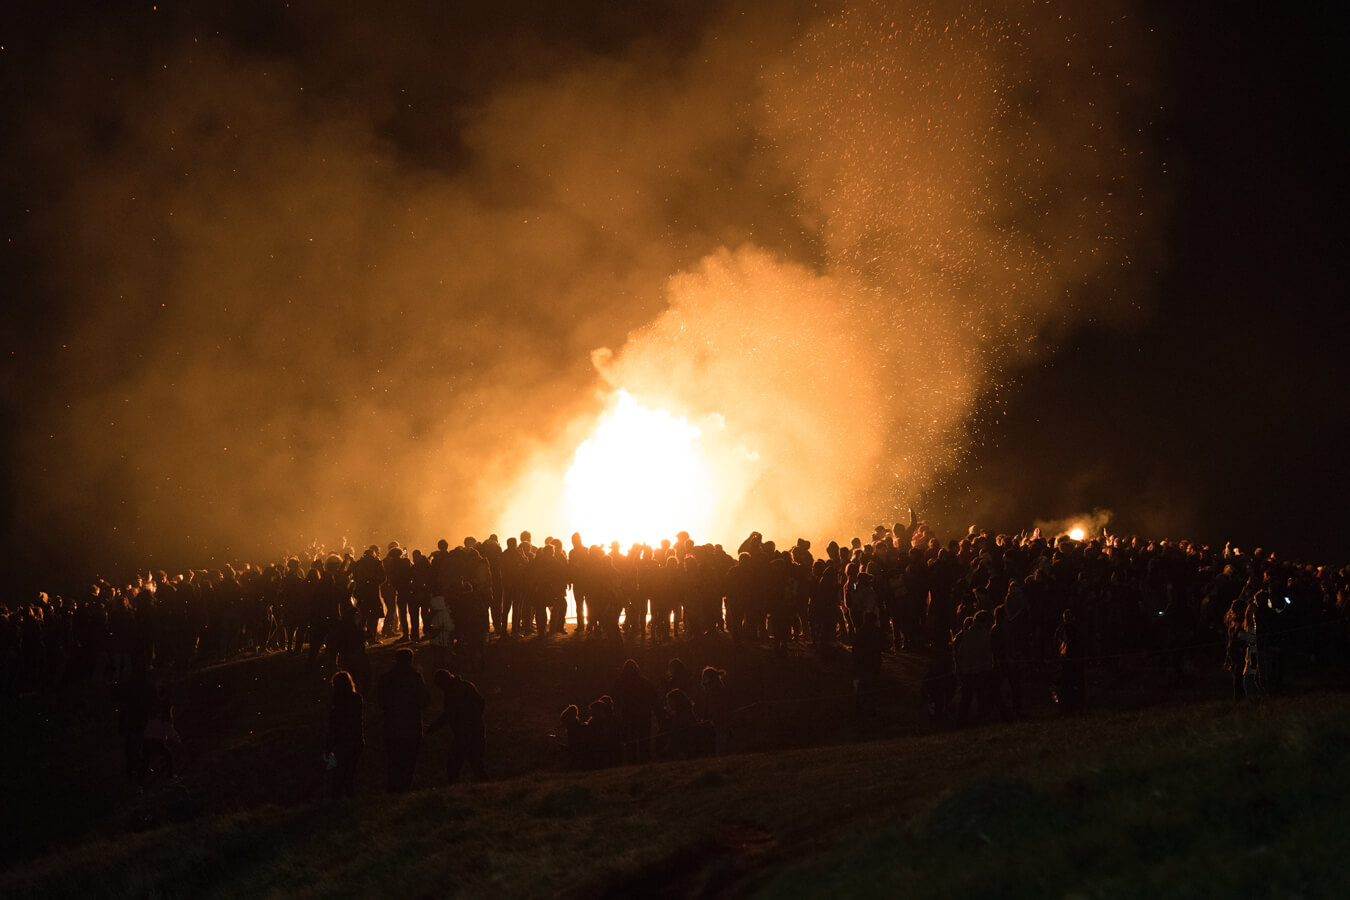 Giant bonfire with people standing around it.